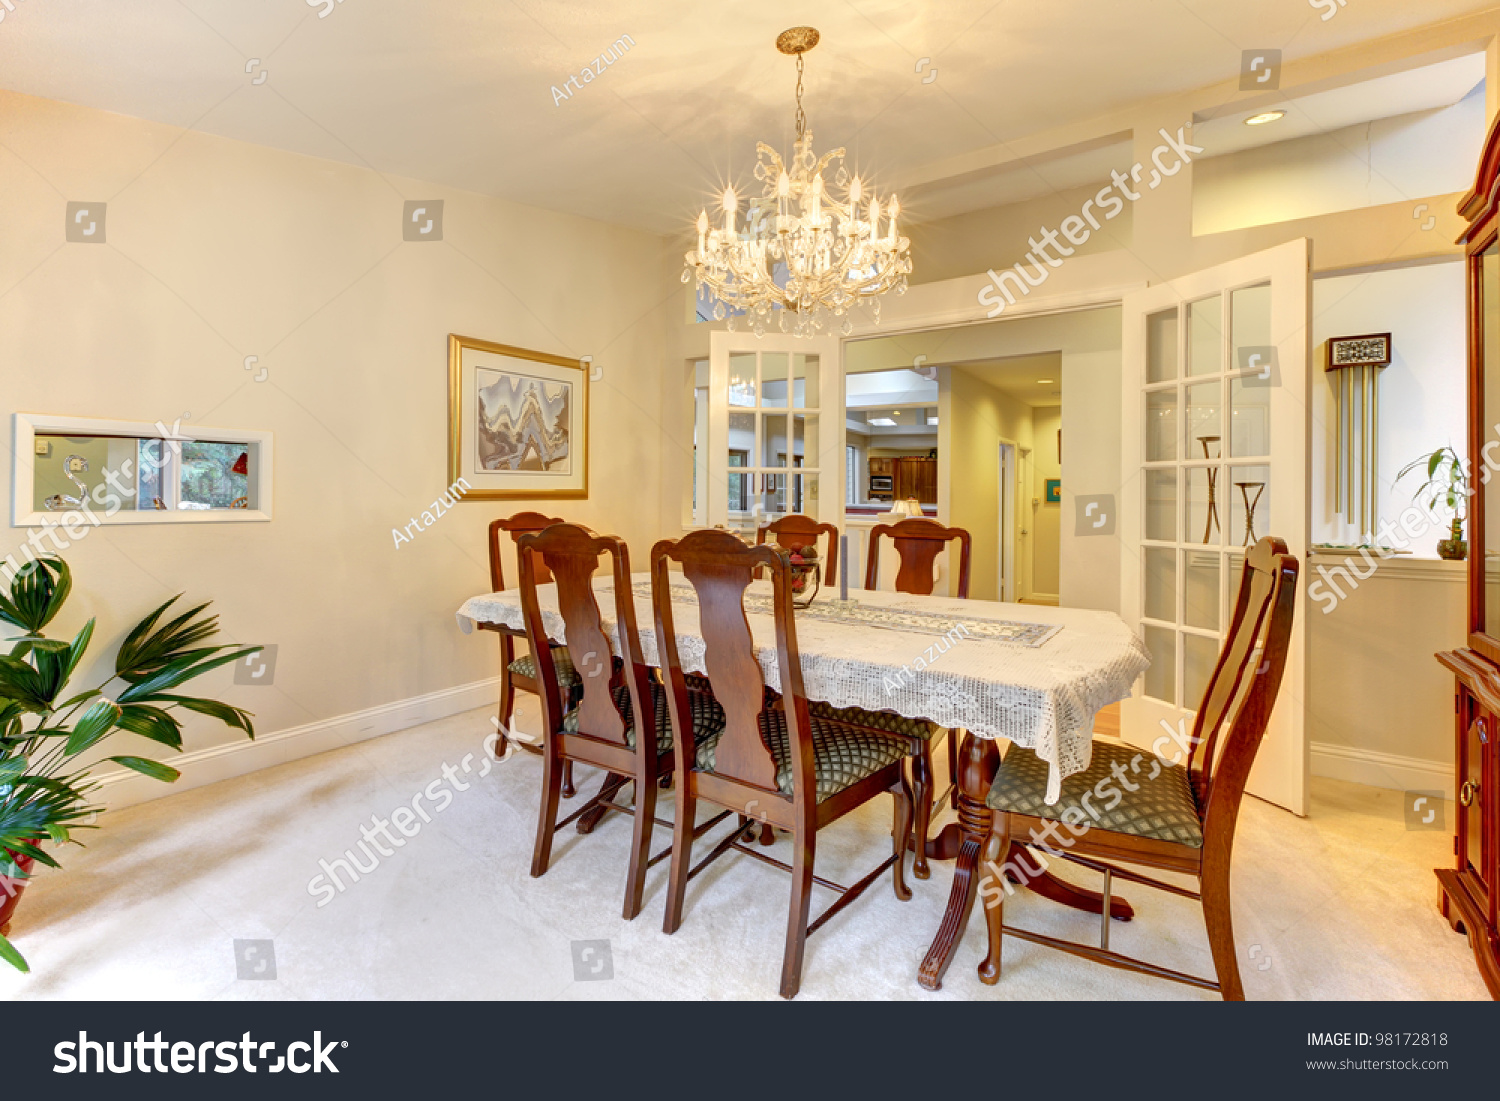 Classic American Dining Room Interior Open Photo 98172818 – French Doors Dining Room